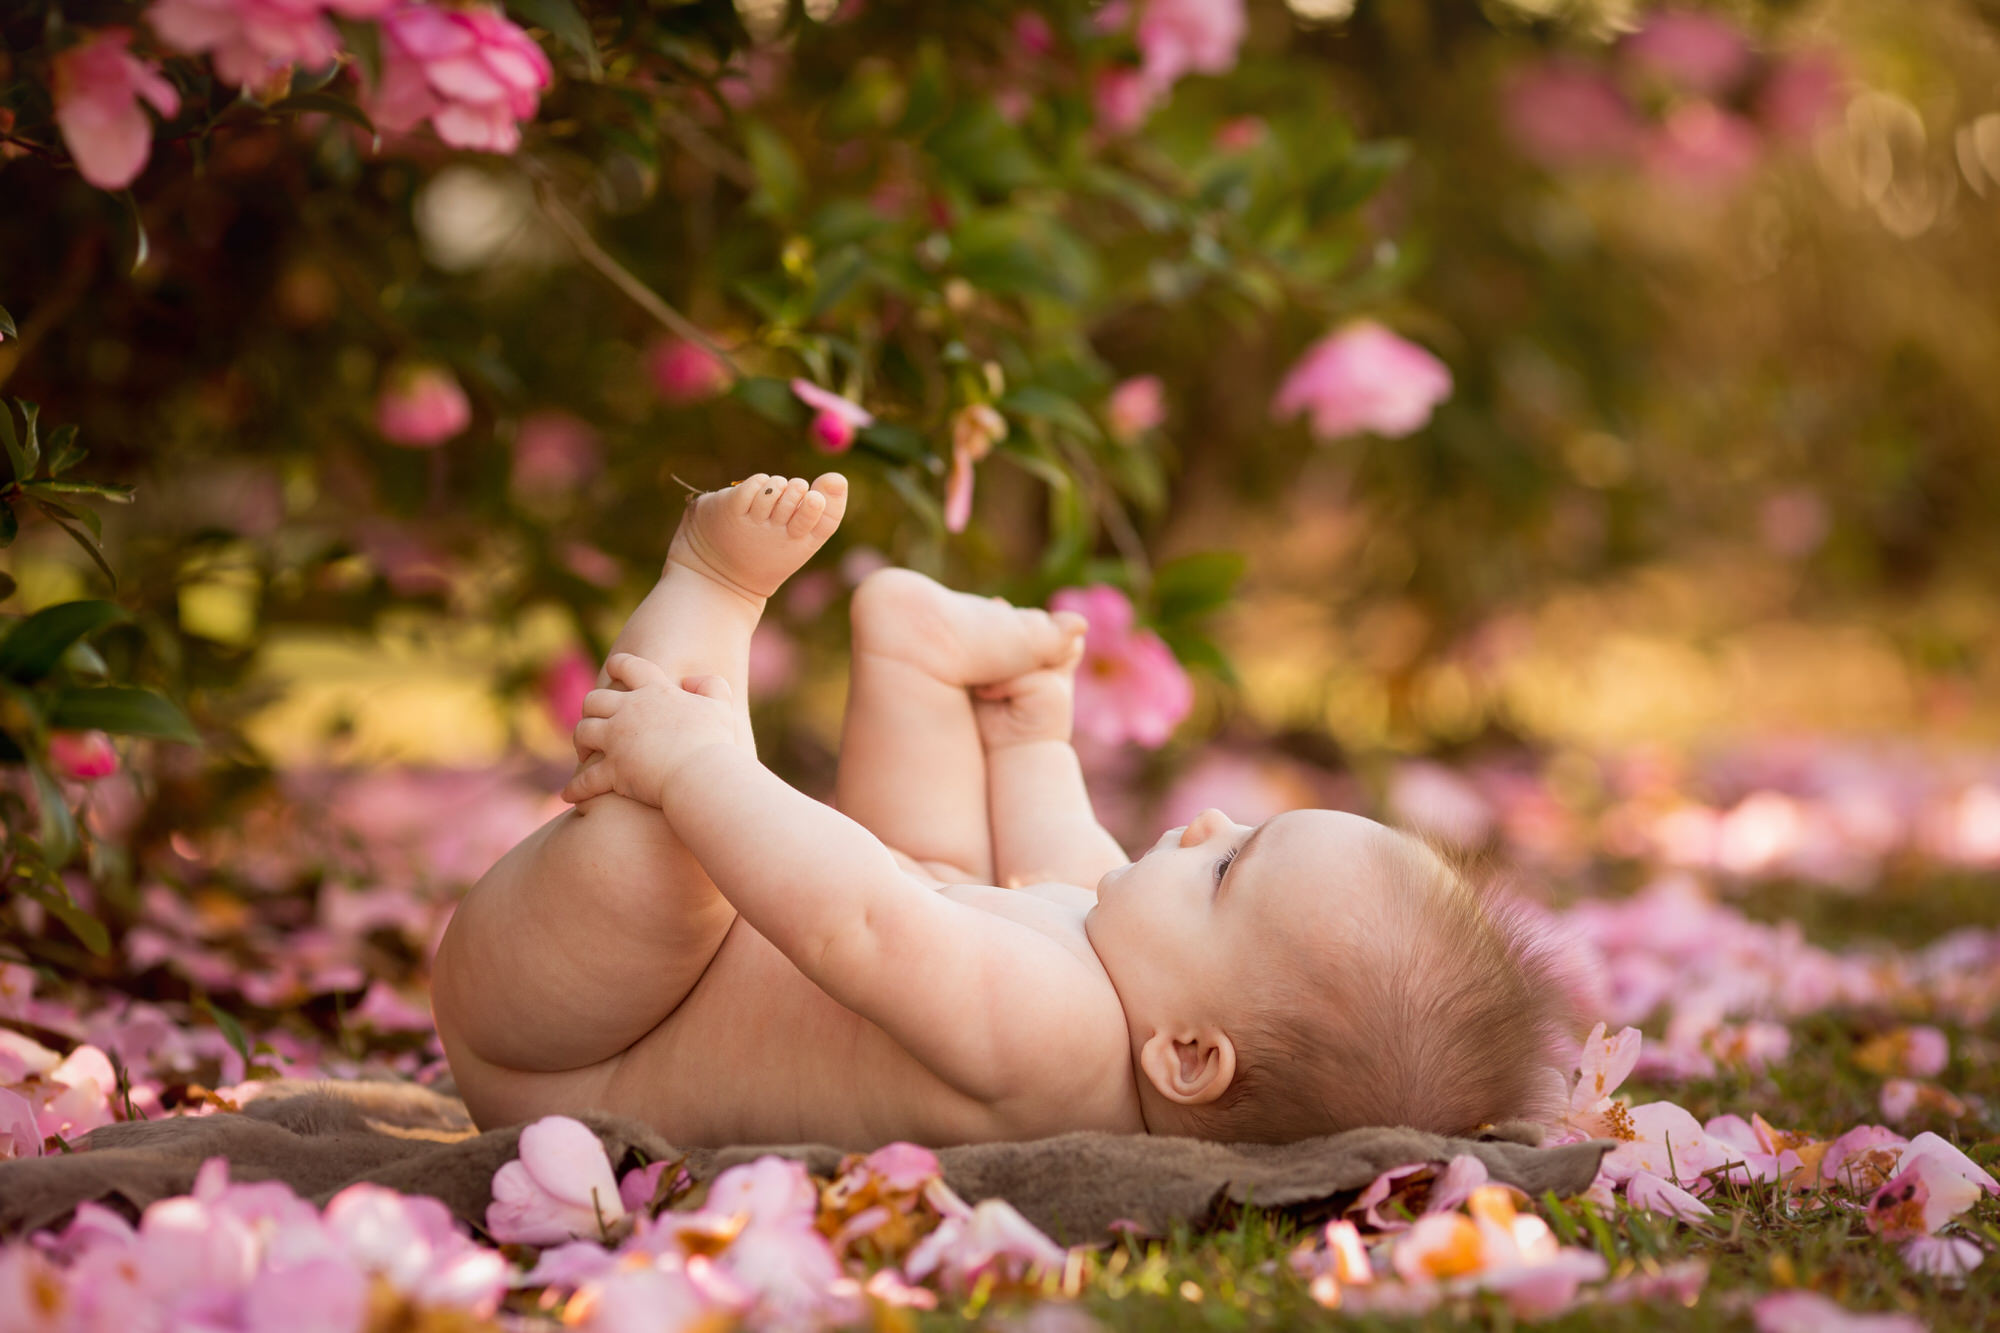 baby girl photographed among pink flowers